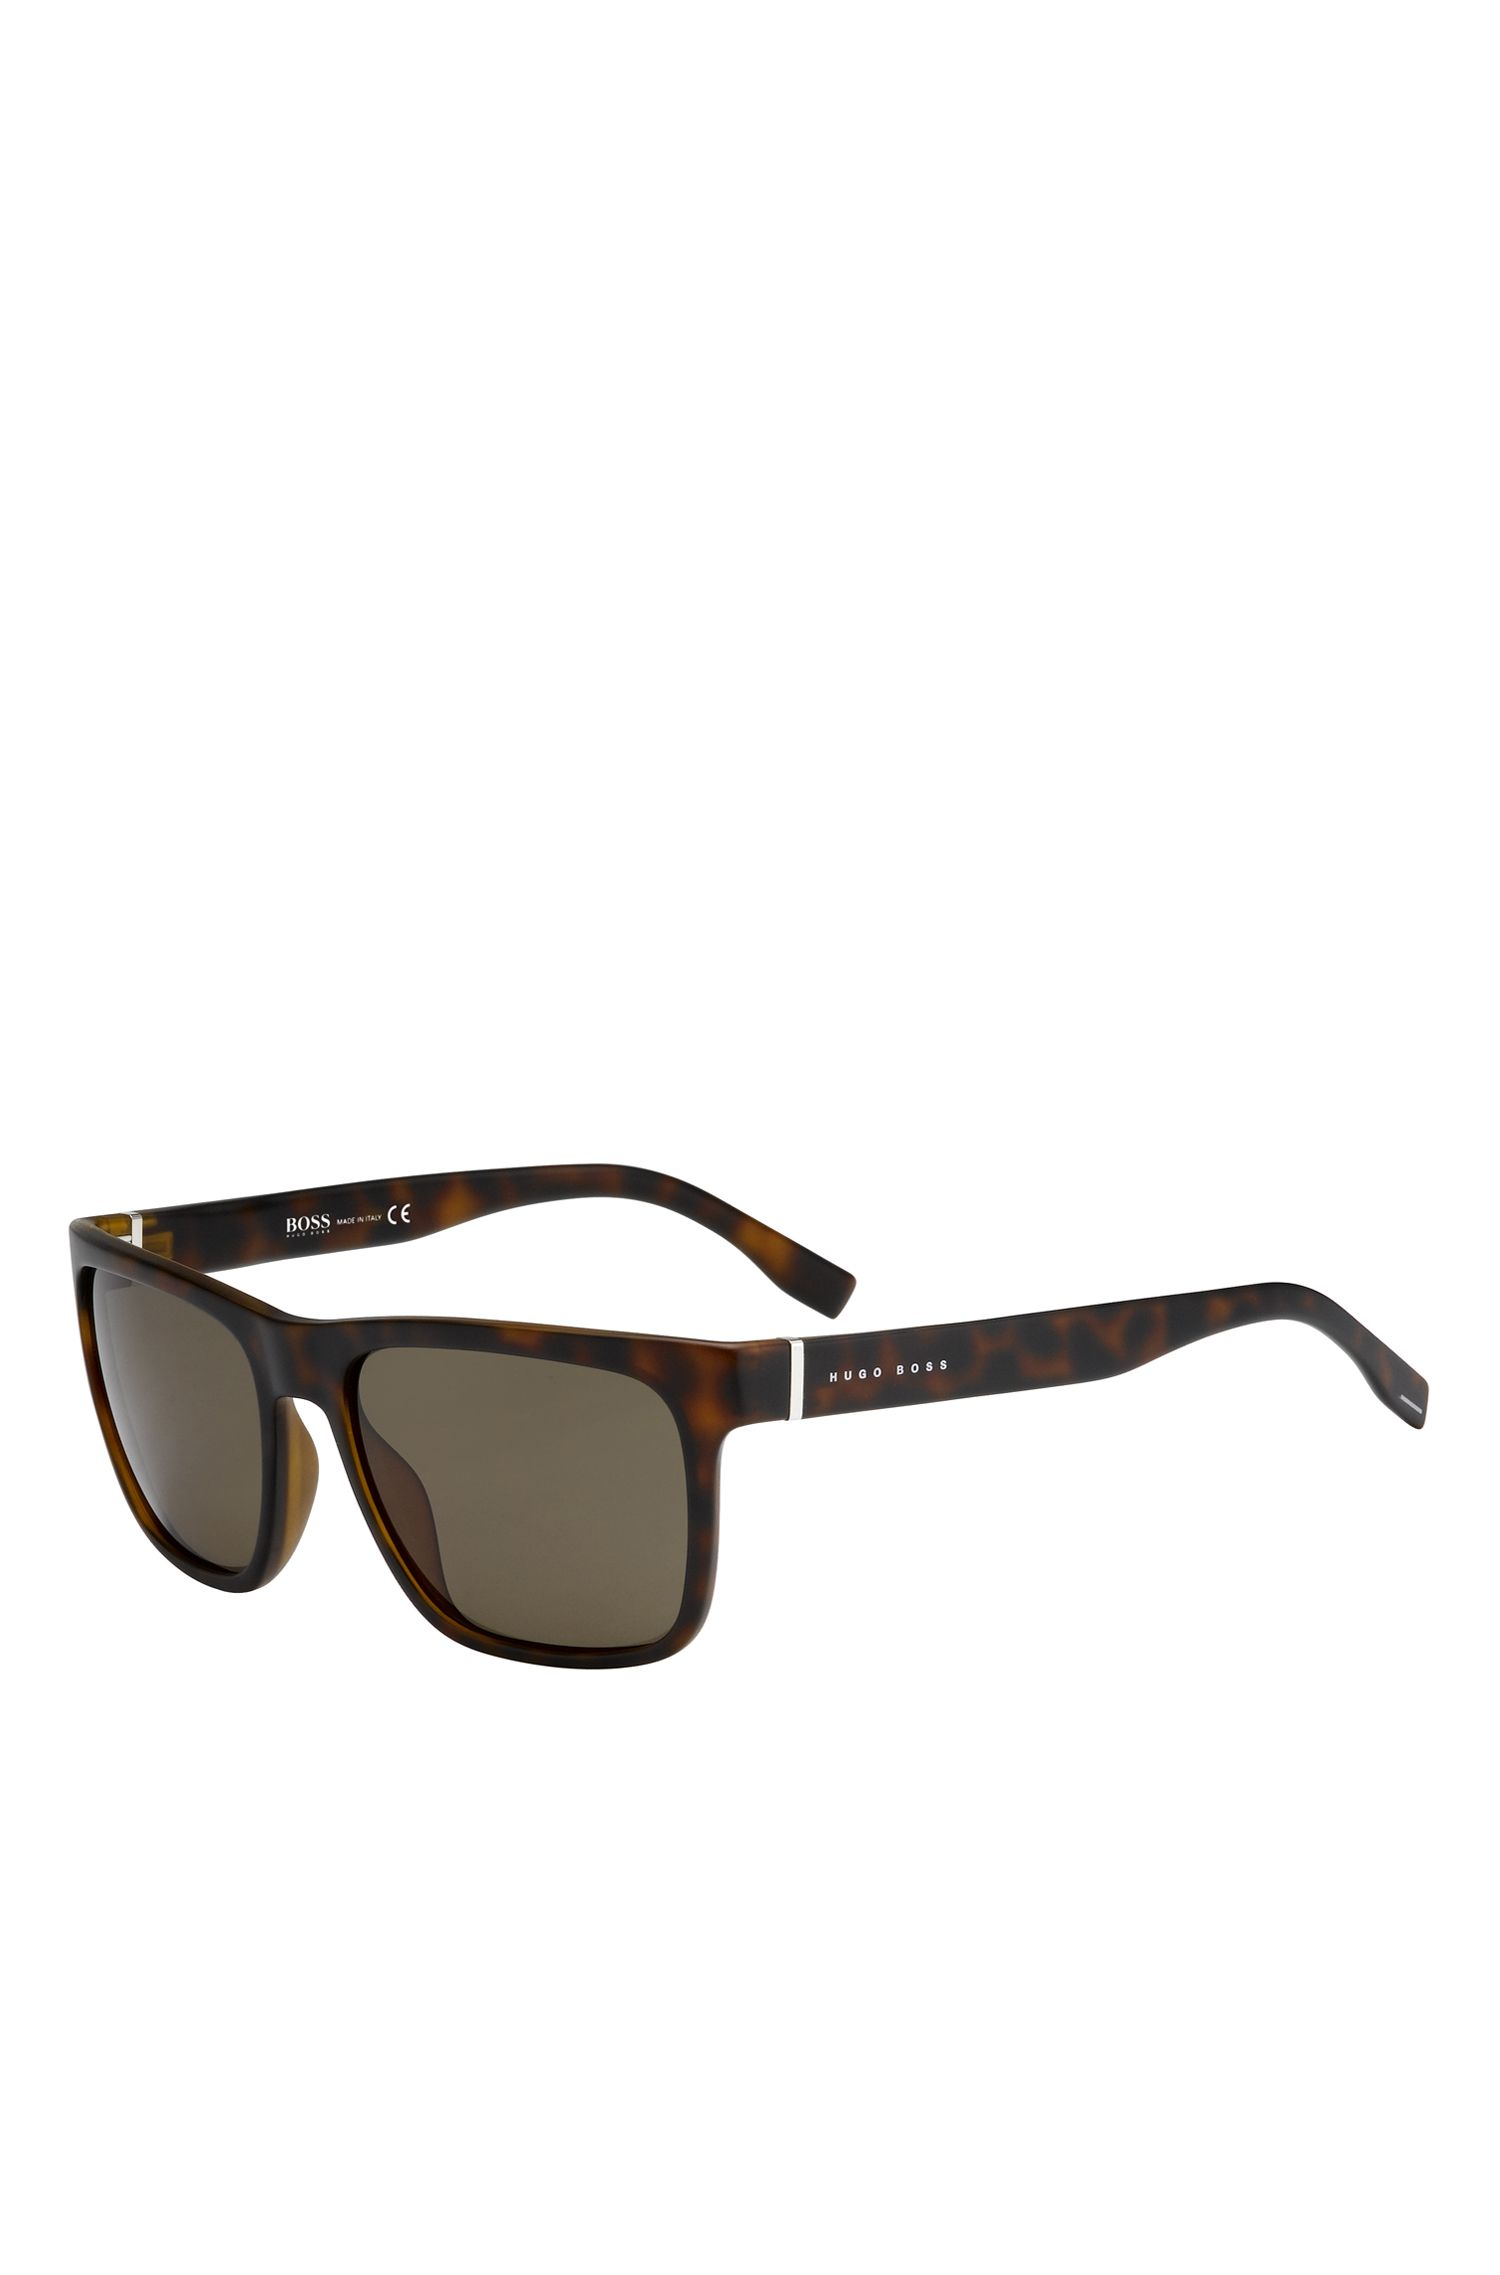 Brown Lens Regtangular Optyl Sunglasses | BOSS 0727S, Assorted-Pre-Pack